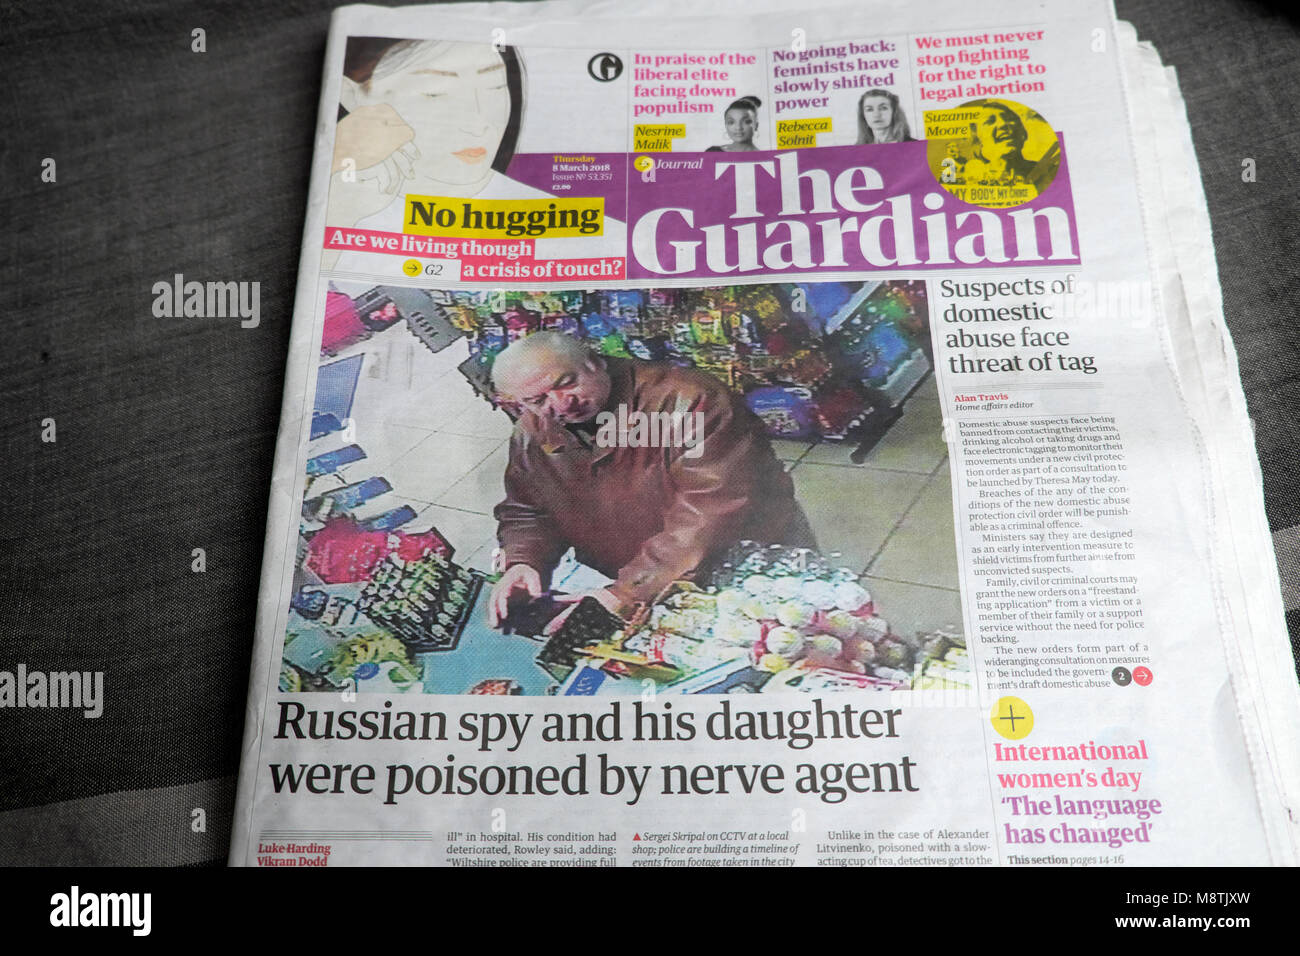 'Russian spy and his daughter were poisoned by nerve agent' front page headline in Guardian newspaper UK - Stock Image